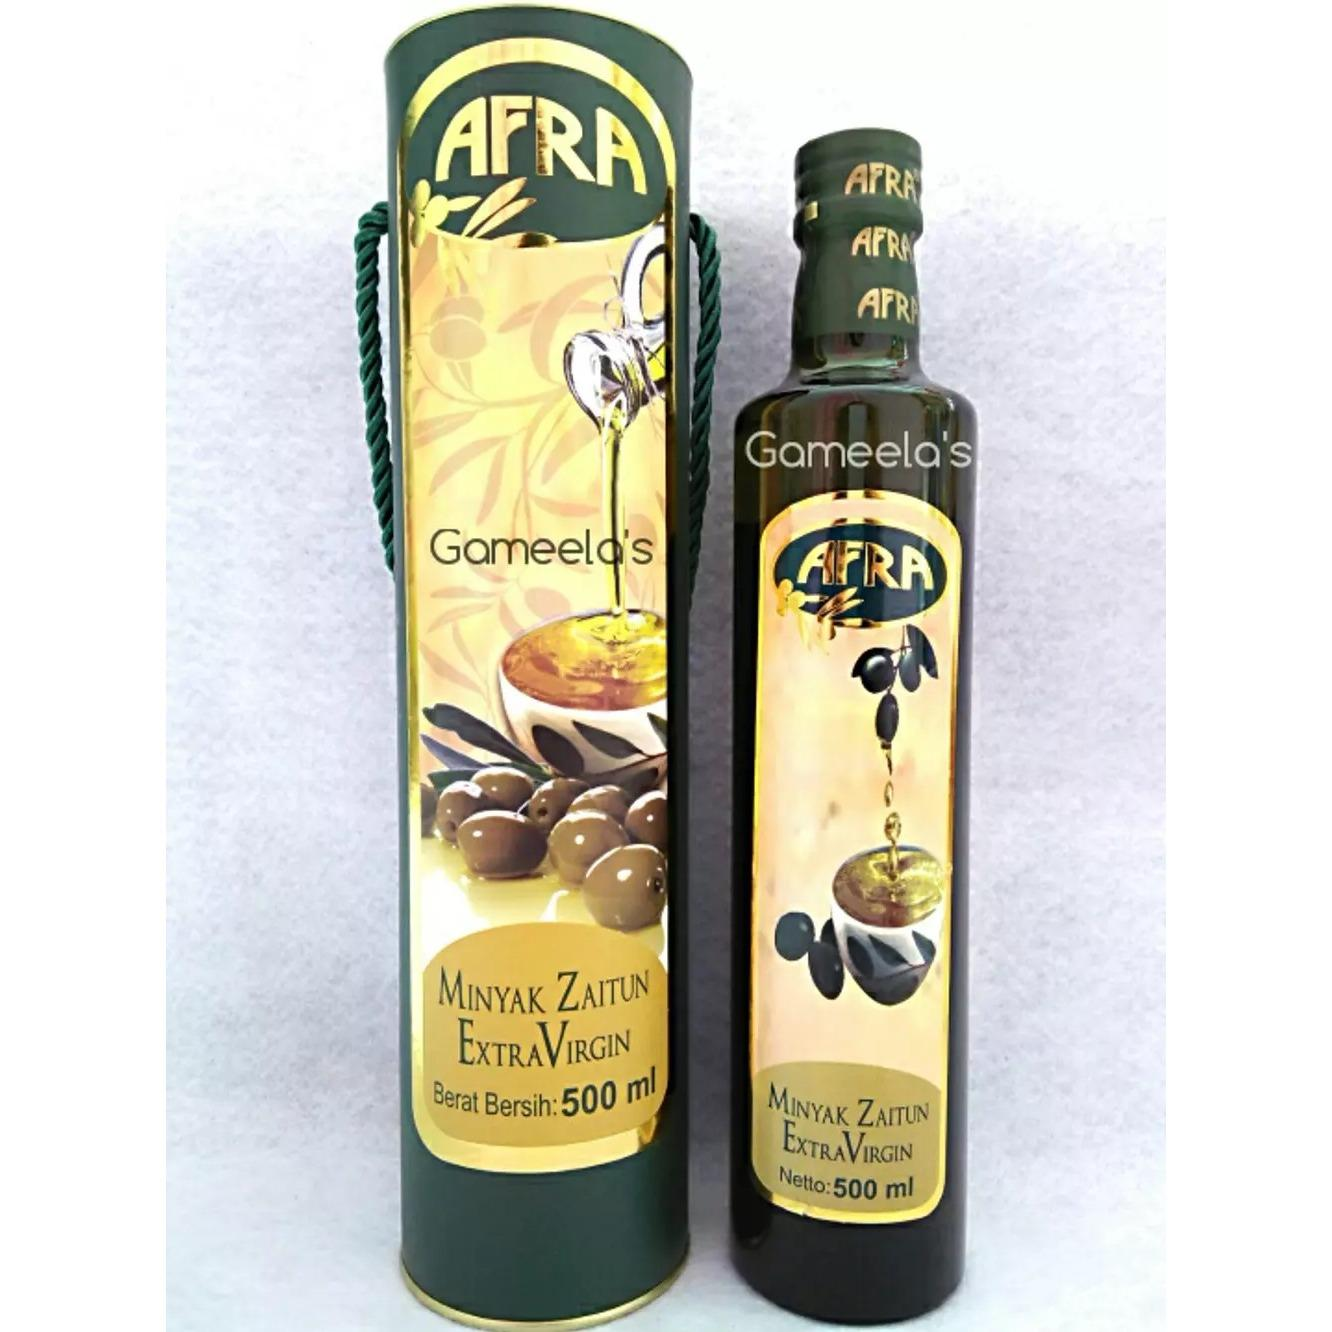 Minyak Zaitun Ekstra Virgin Afra 500 Ml Kemasan Eksklusif Extra Virgin Olive Oil EVOO